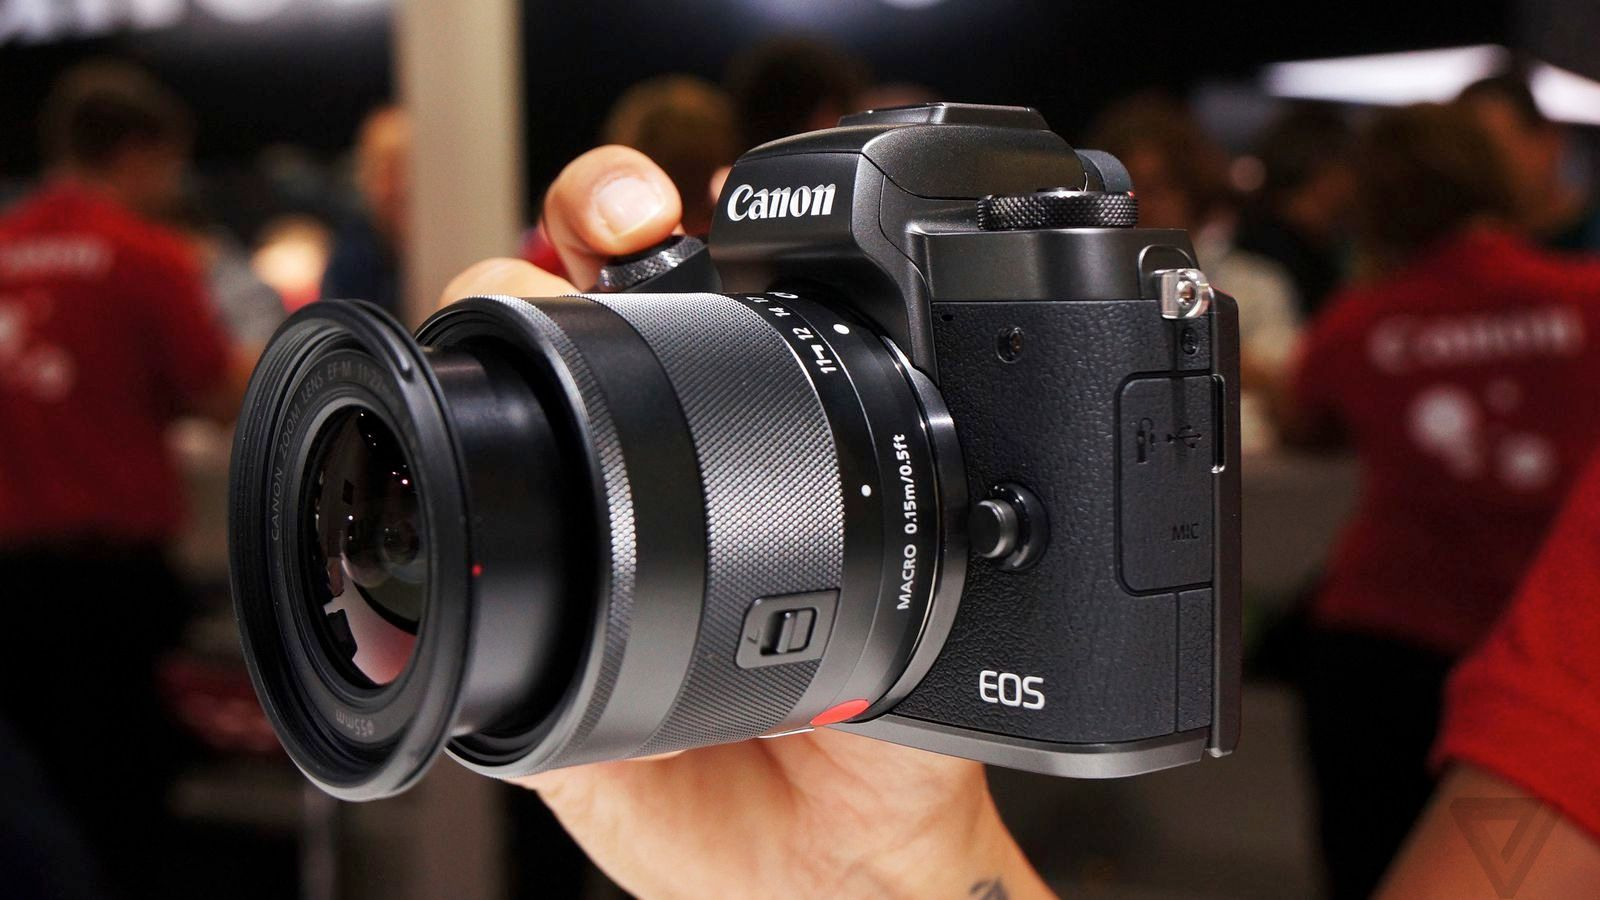 Canon's $980 M5 is an intriguing, but unconvincing mirrorless camera